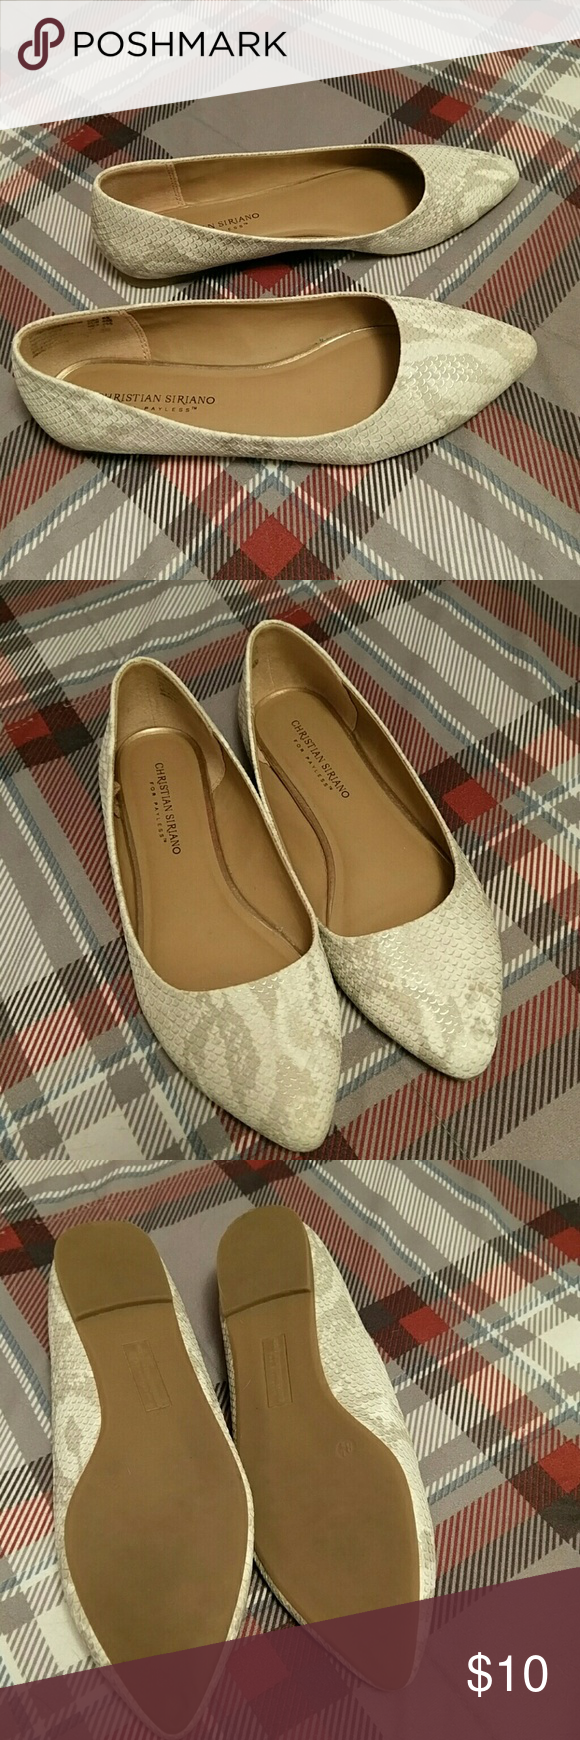 Christian Siriano Flats 8 1/2 8.5 Snakeskin look flats, wore twice. Great condition. Straight out of my closet. Christian Siriano Shoes Flats & Loafers